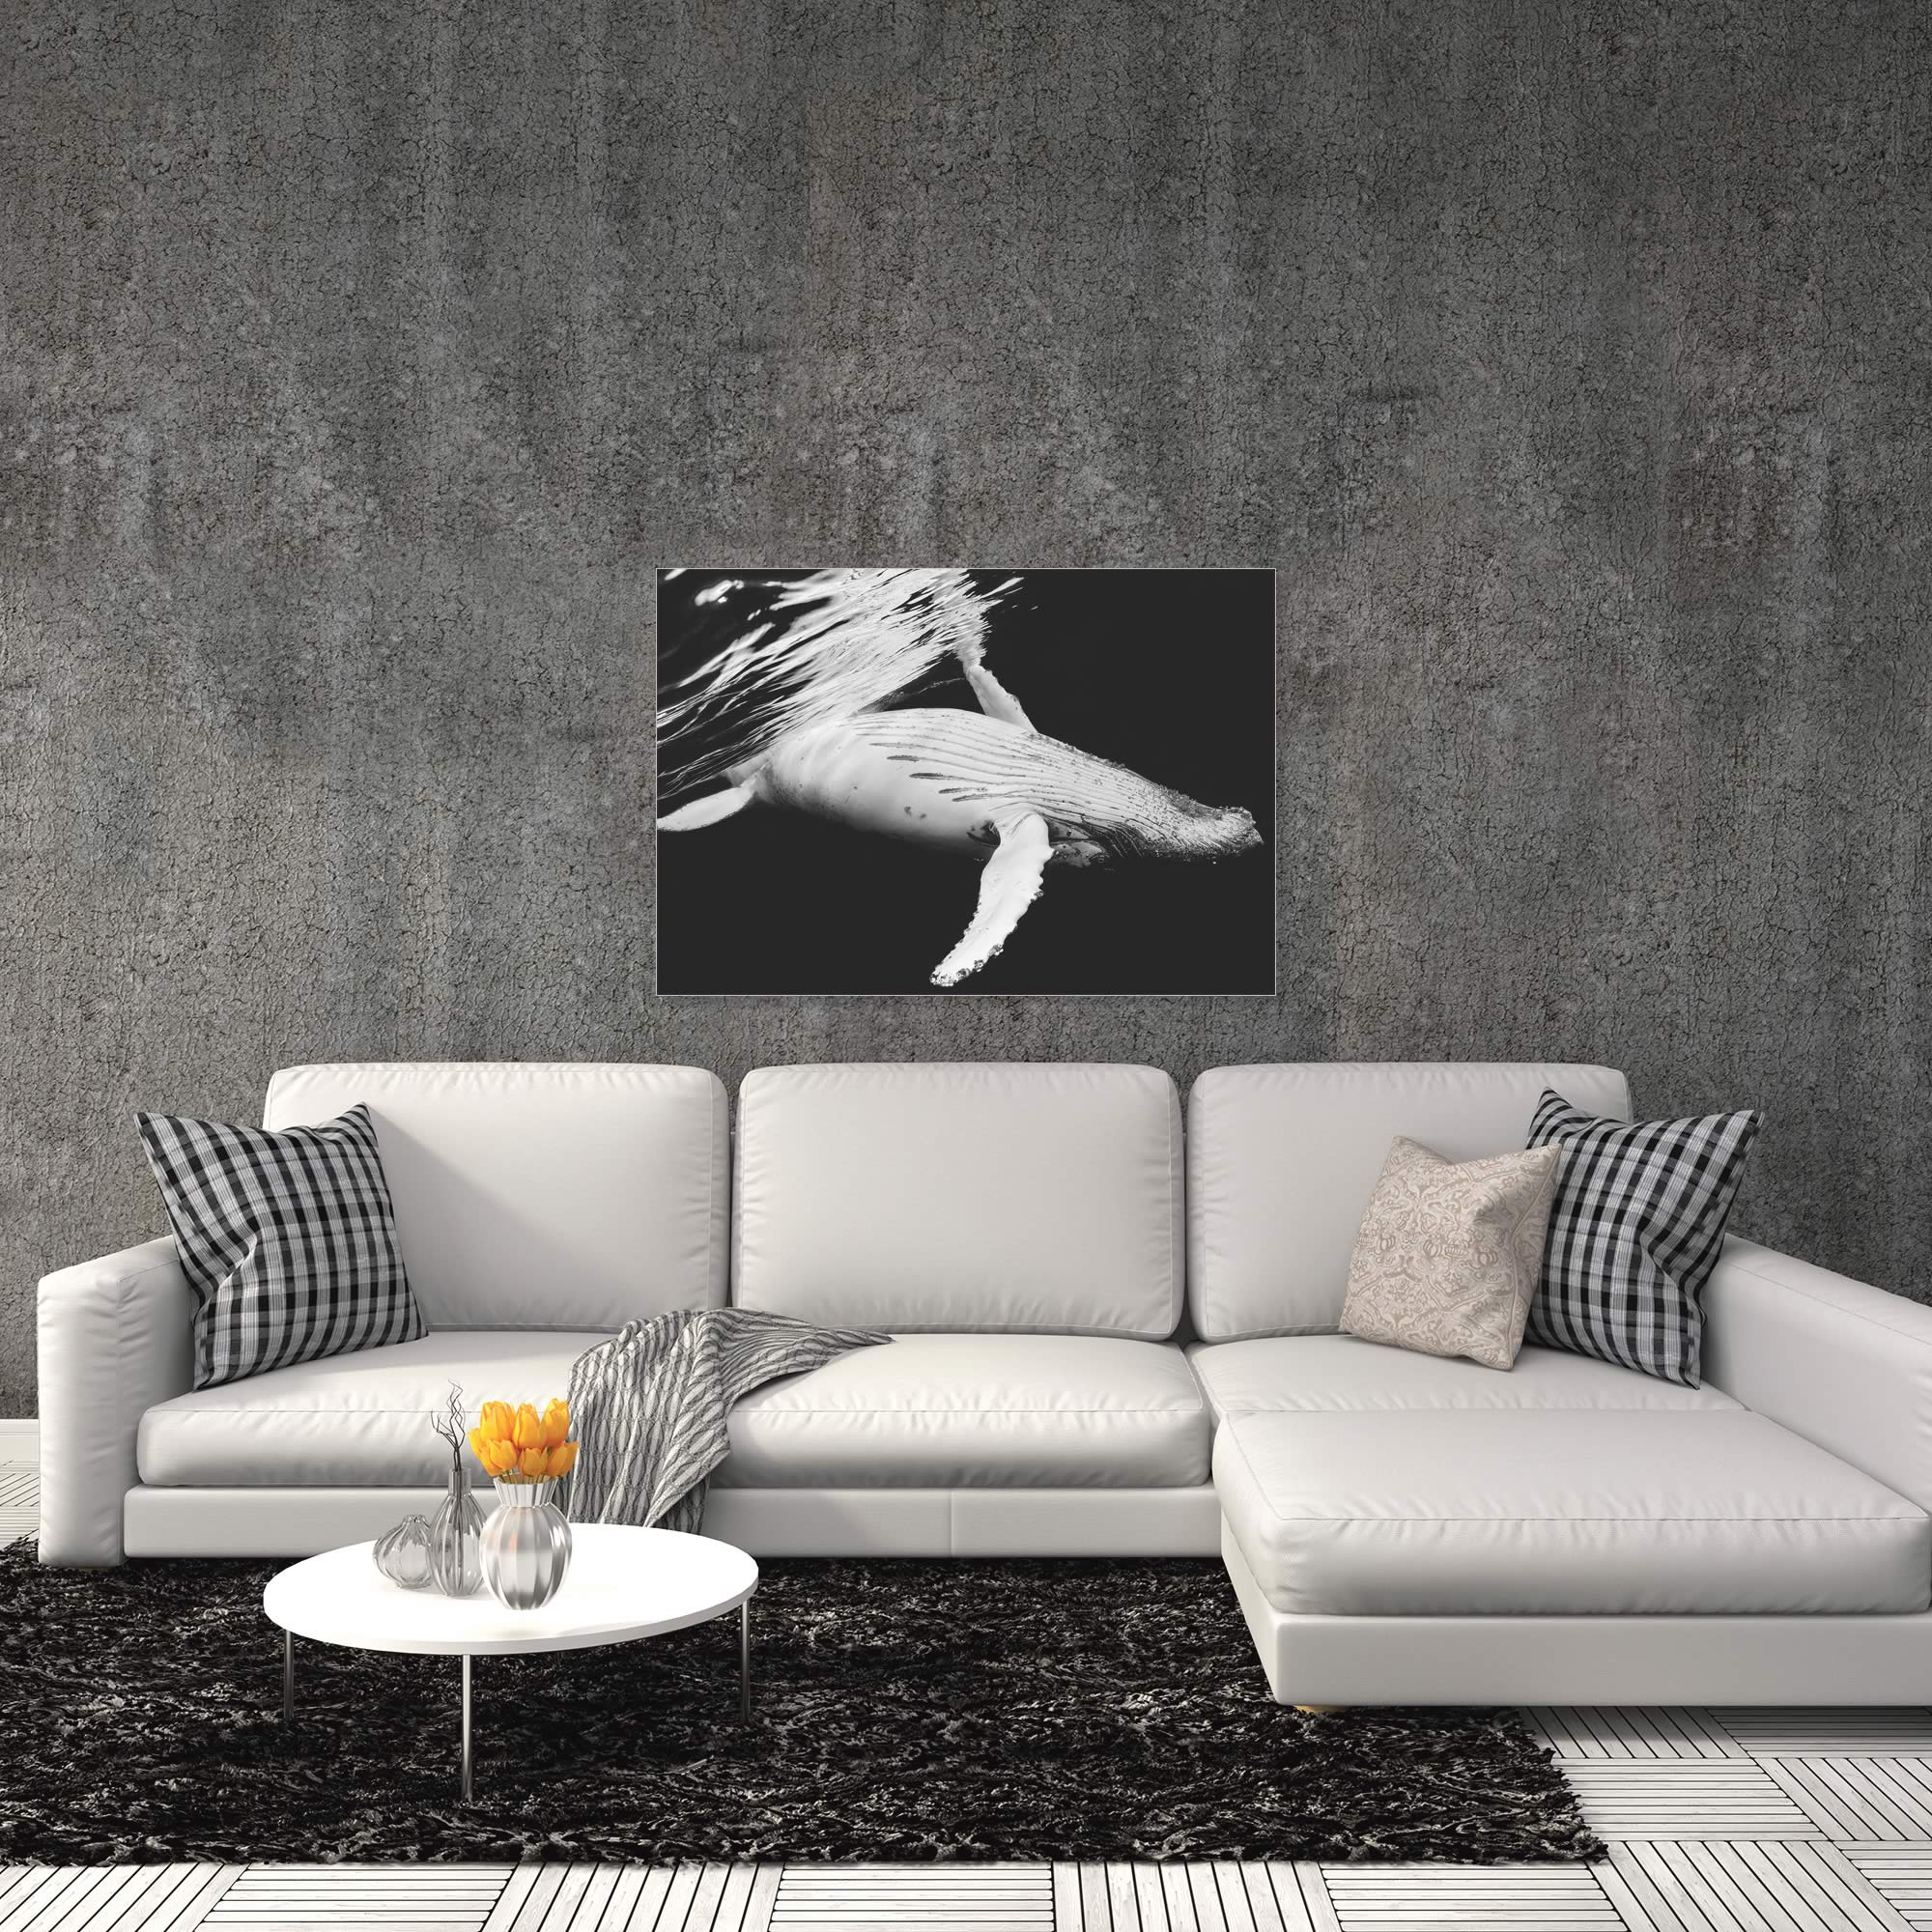 Black and White Whale by Barathieu Gabriel - Contemporary Whale Art on Metal or Acrylic - Alternate View 1